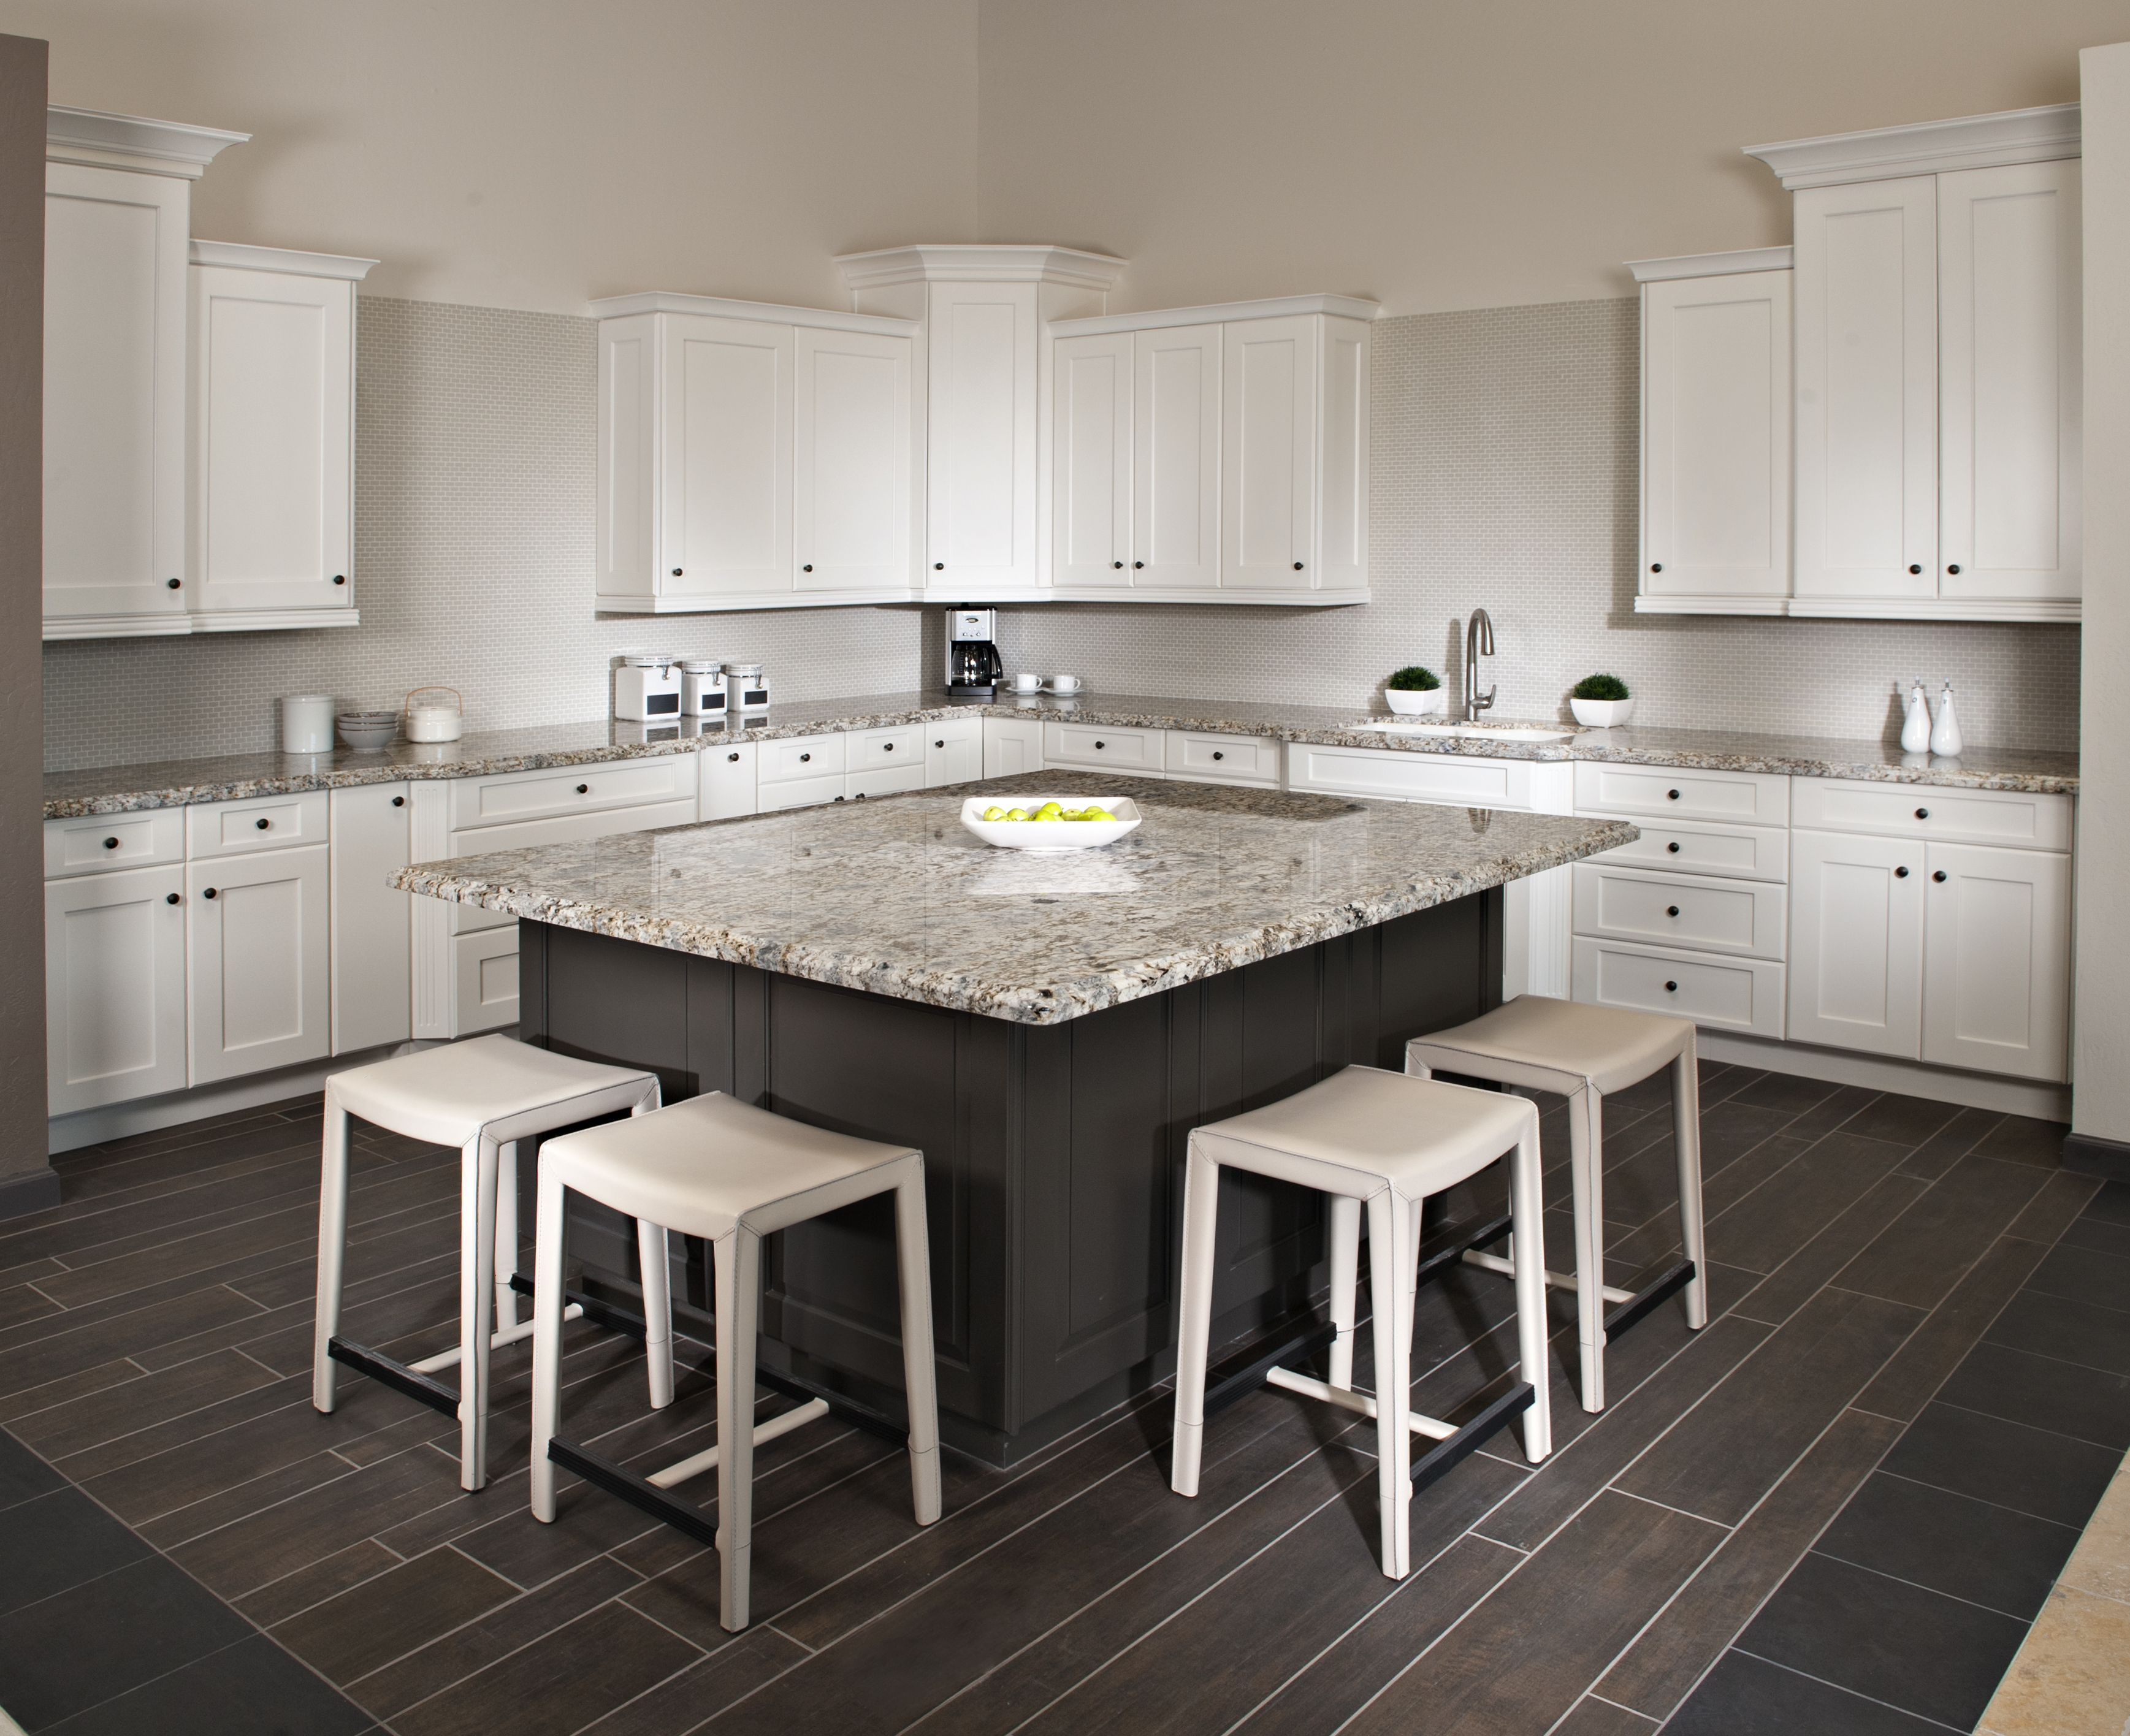 Bedrosians Tile And Stone Featuring Our Barrique Fonce Wood Look